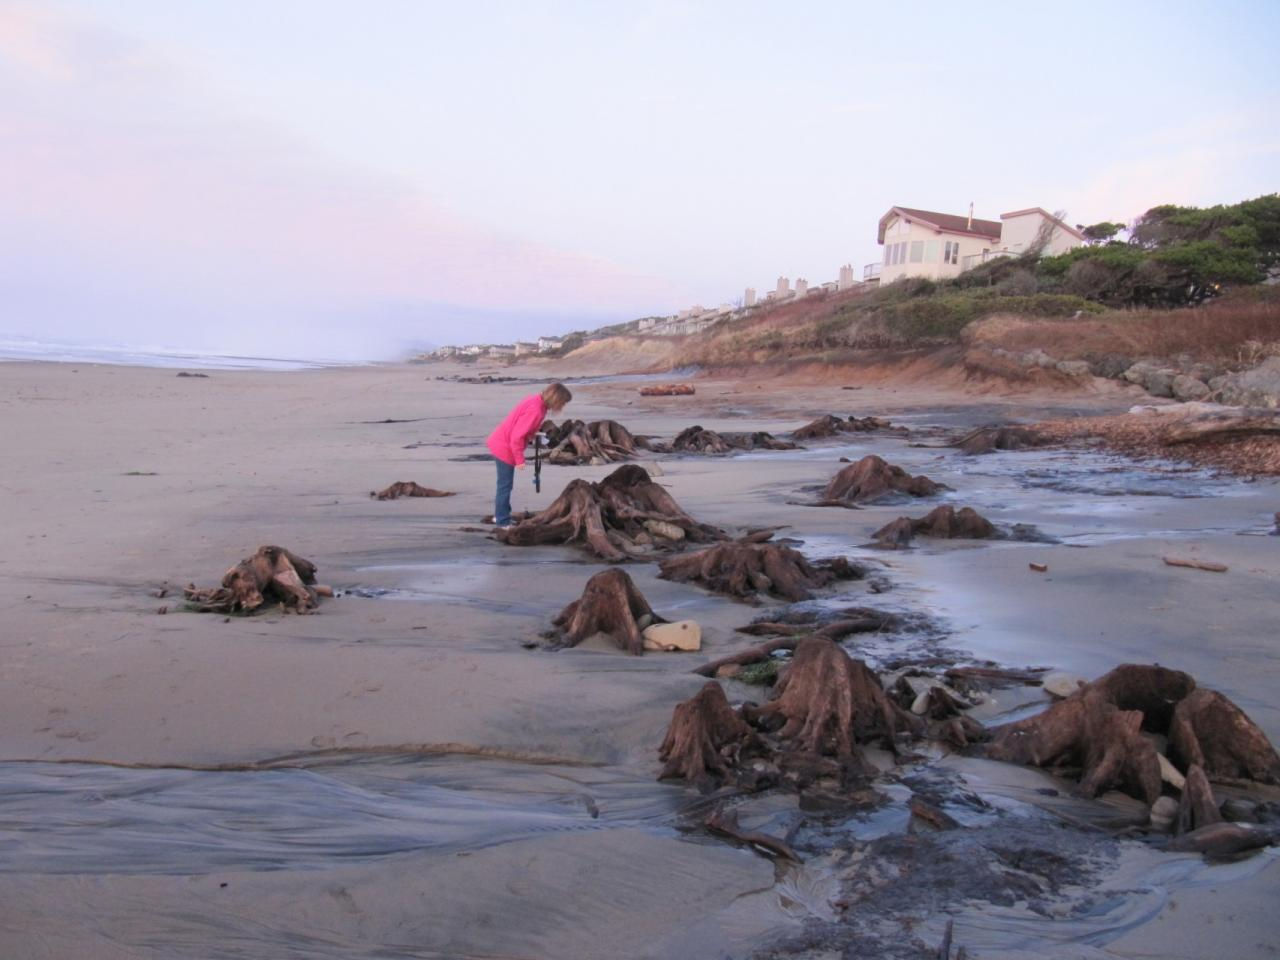 Collection of stumps after a high tide.